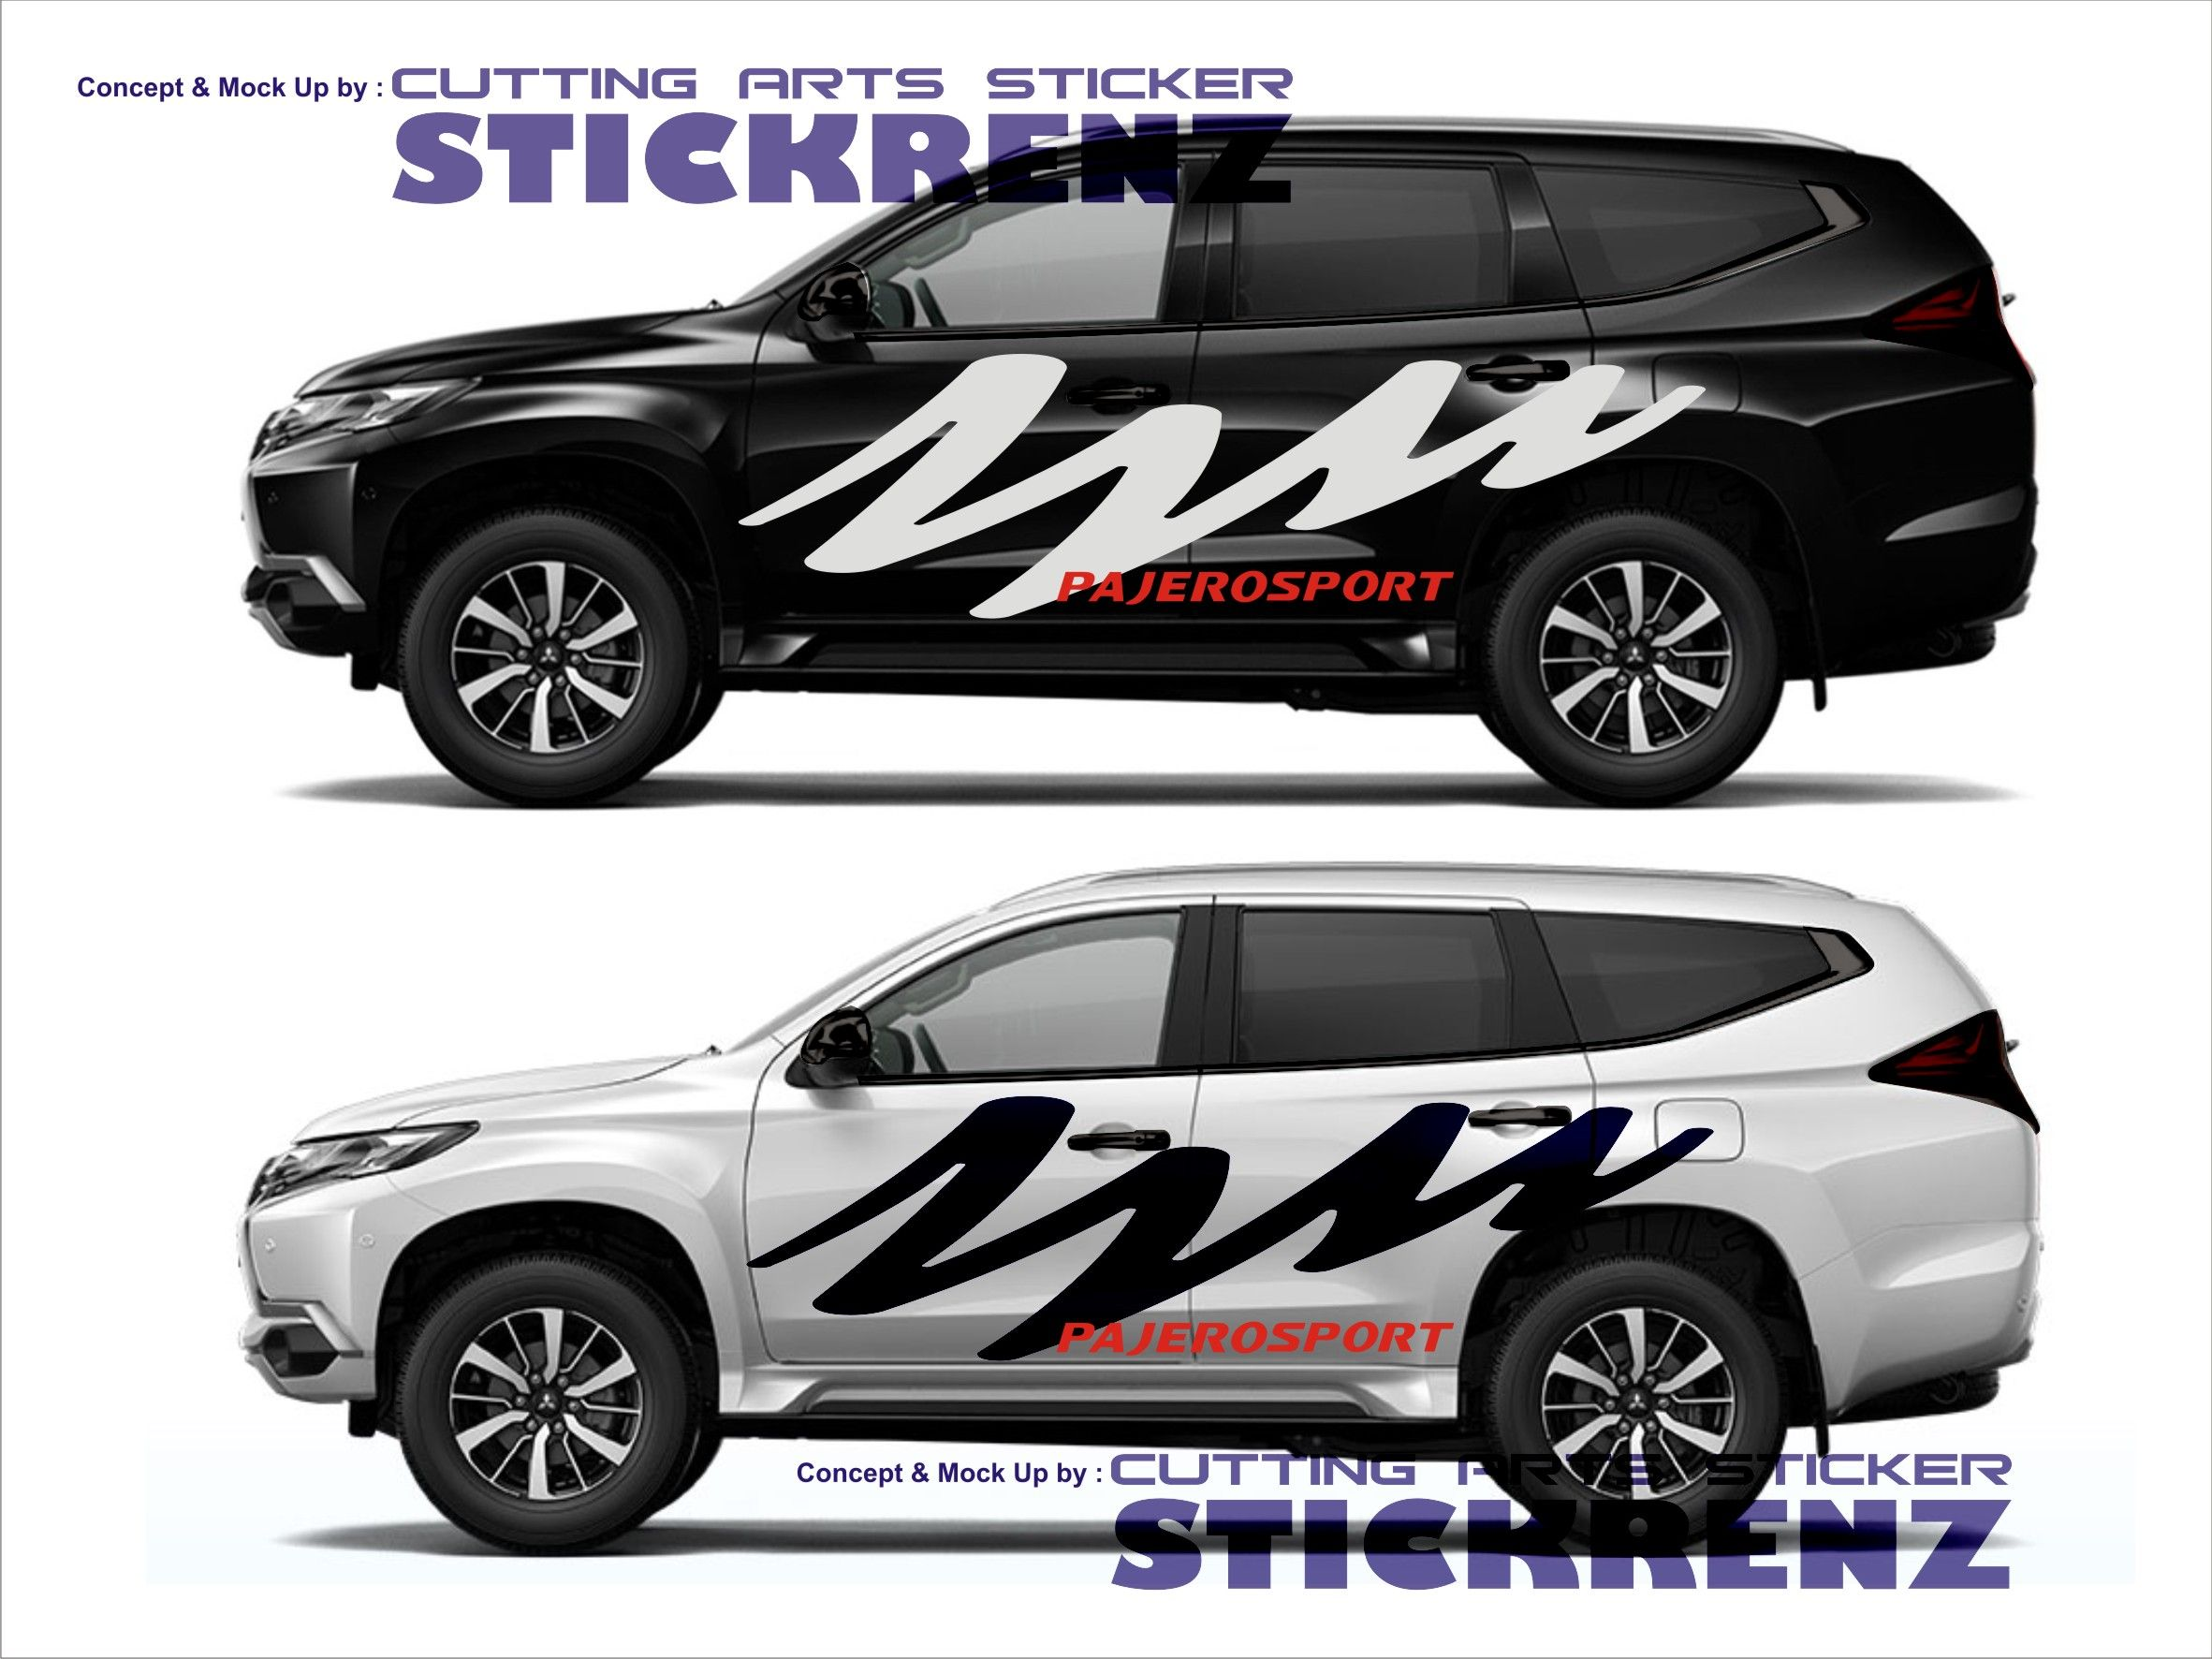 Car custom side cutting sticker concept pajero 007